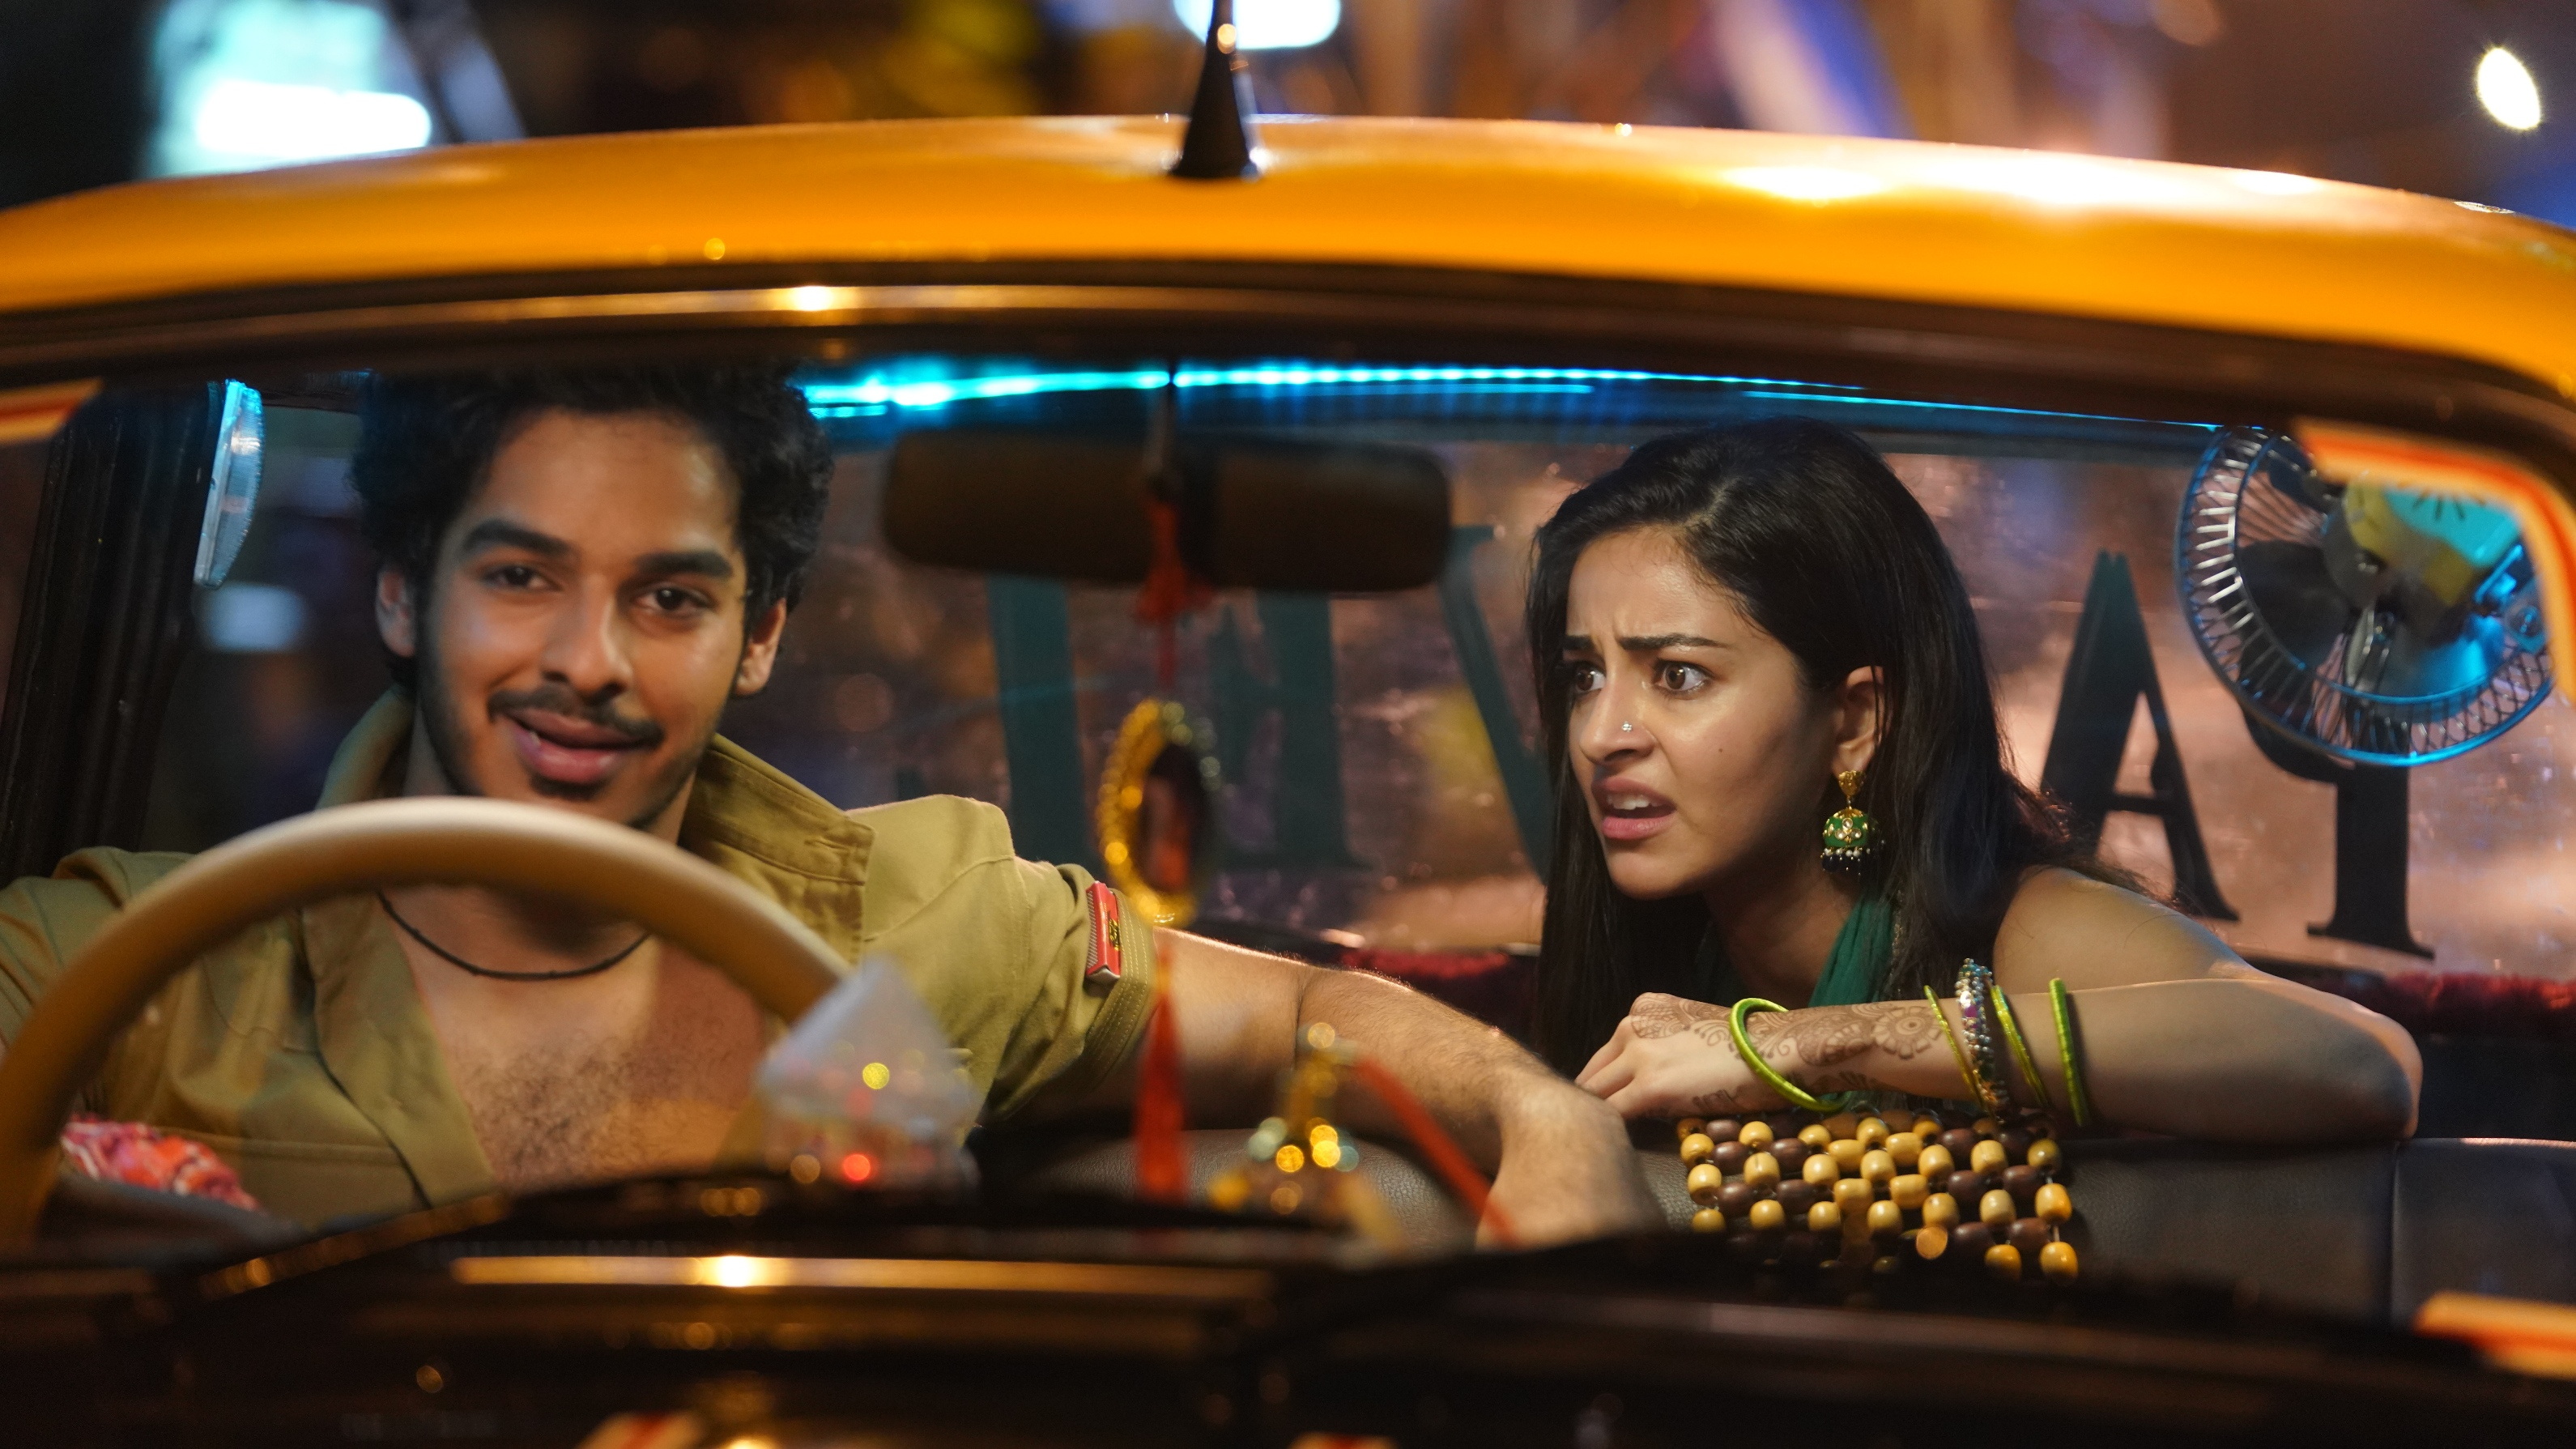 Khaali Peeli delivers typical Bollywood masala style, in an iconic Mumbai taxi. Photo Courtesy: Zee Studios